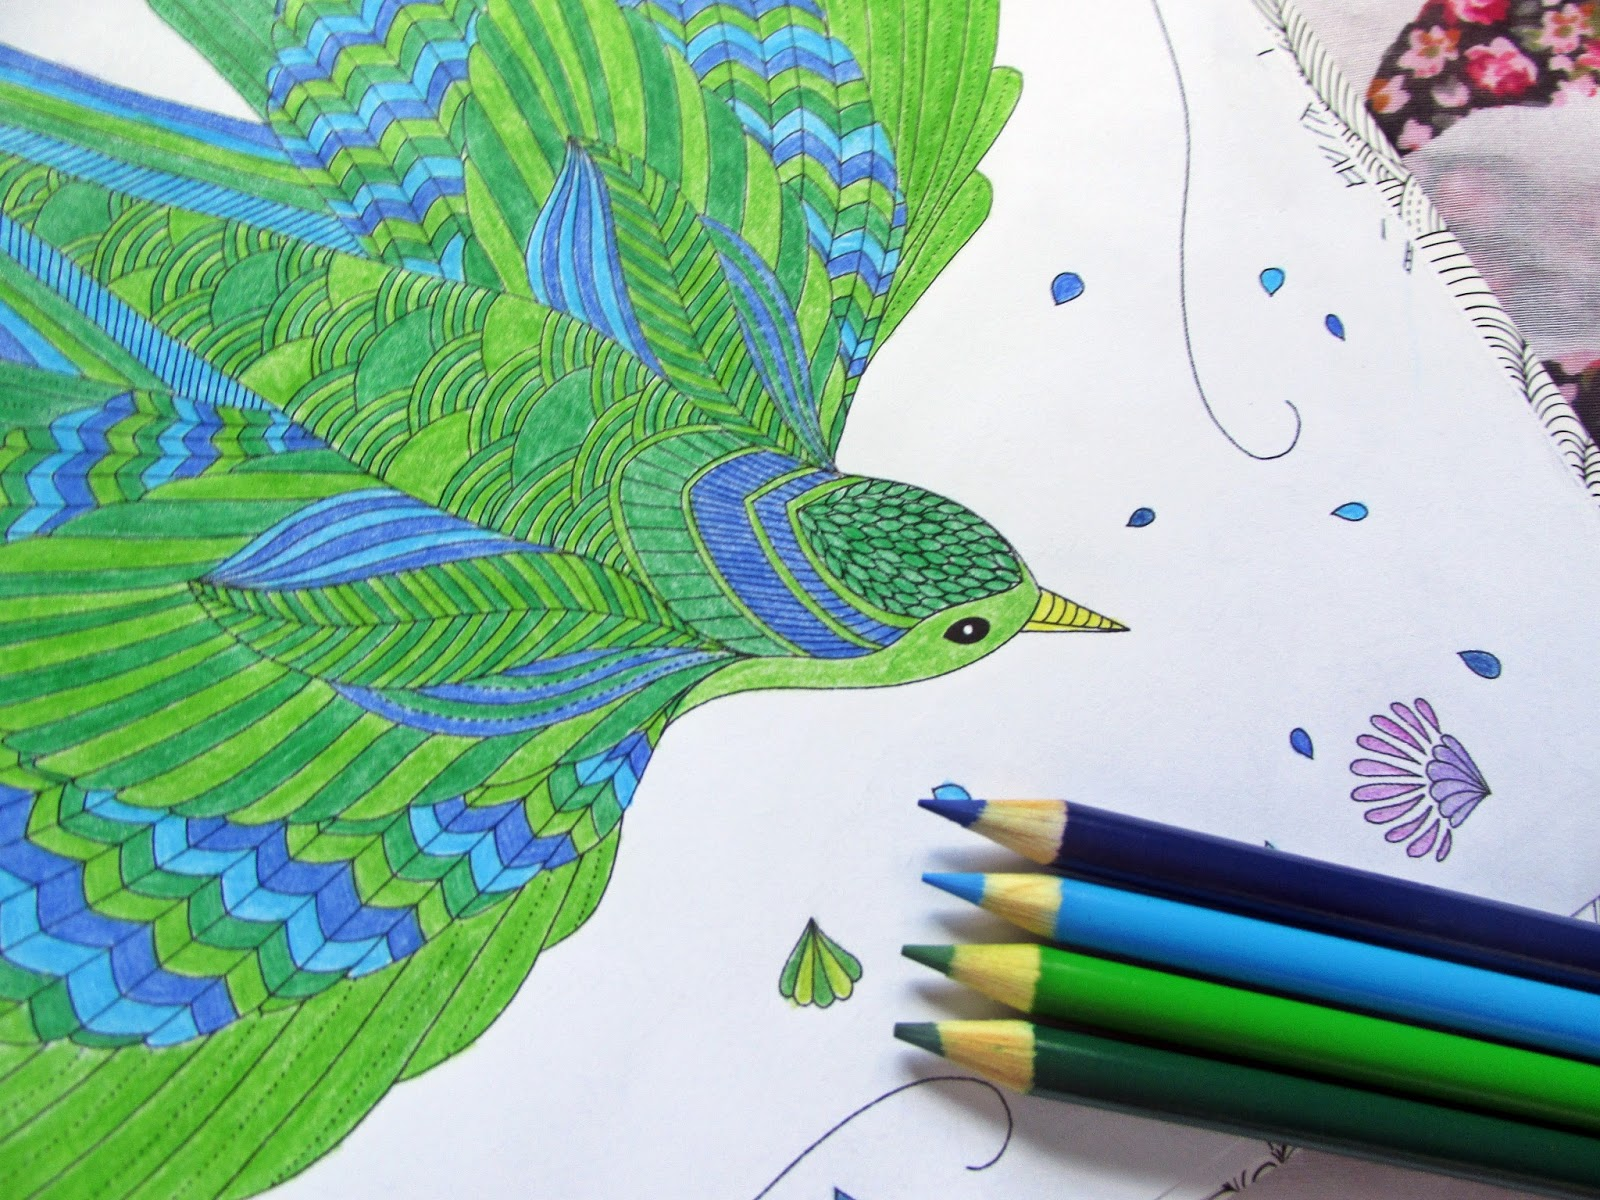 Color me draw me animal kingdom book - It S The Perfect Book If You Want To Create Pretty Pictures But Don T Have A Talent For Drawing That S Me Alright